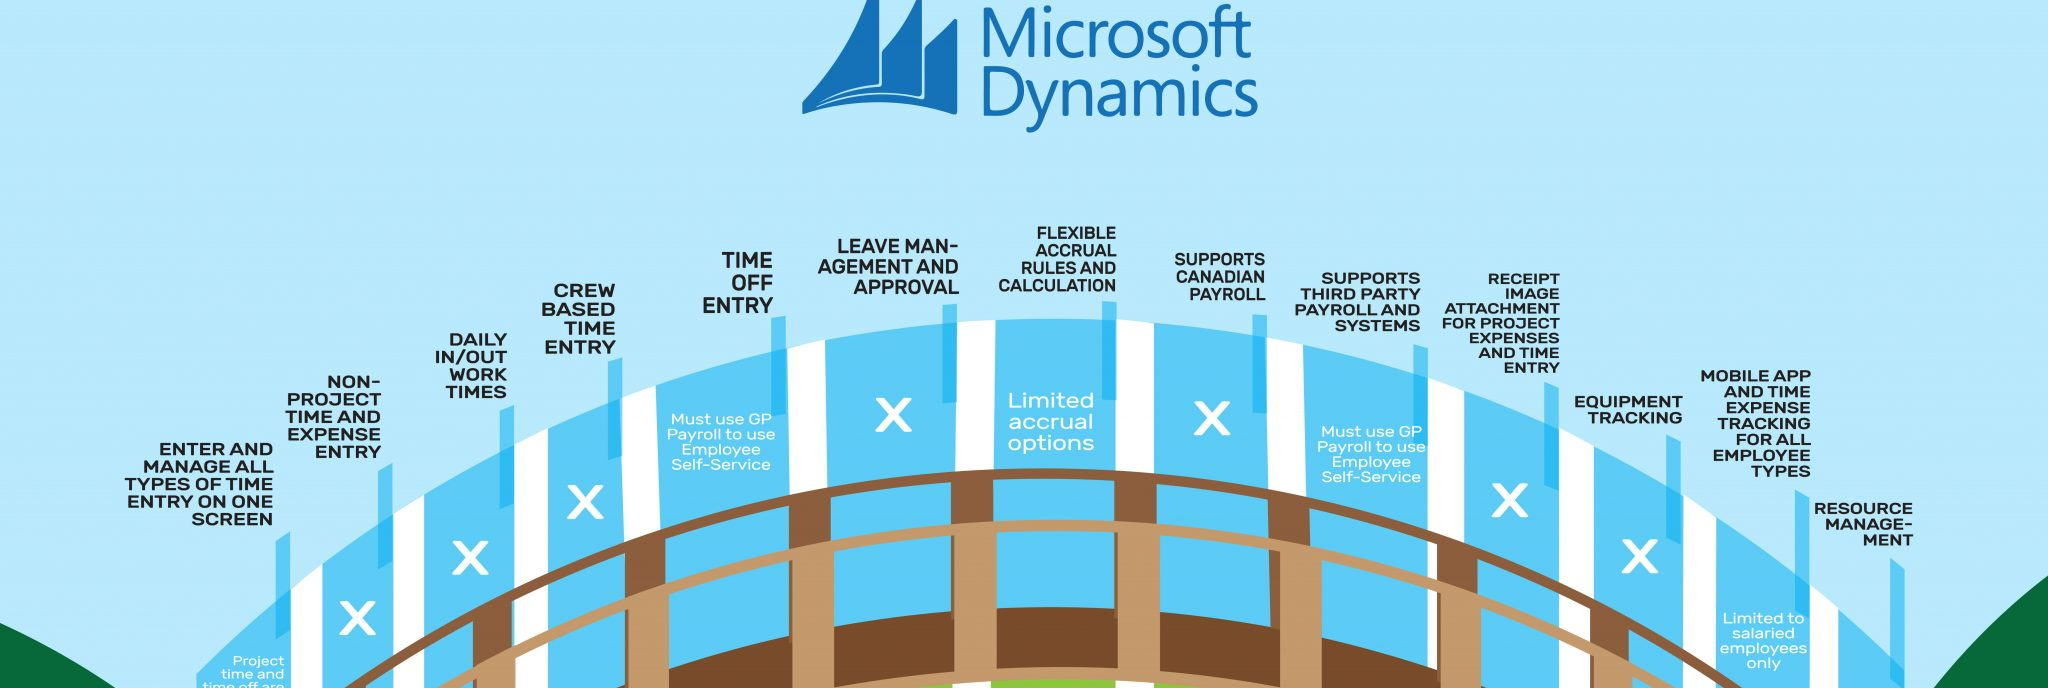 microsfot dynamics infographic